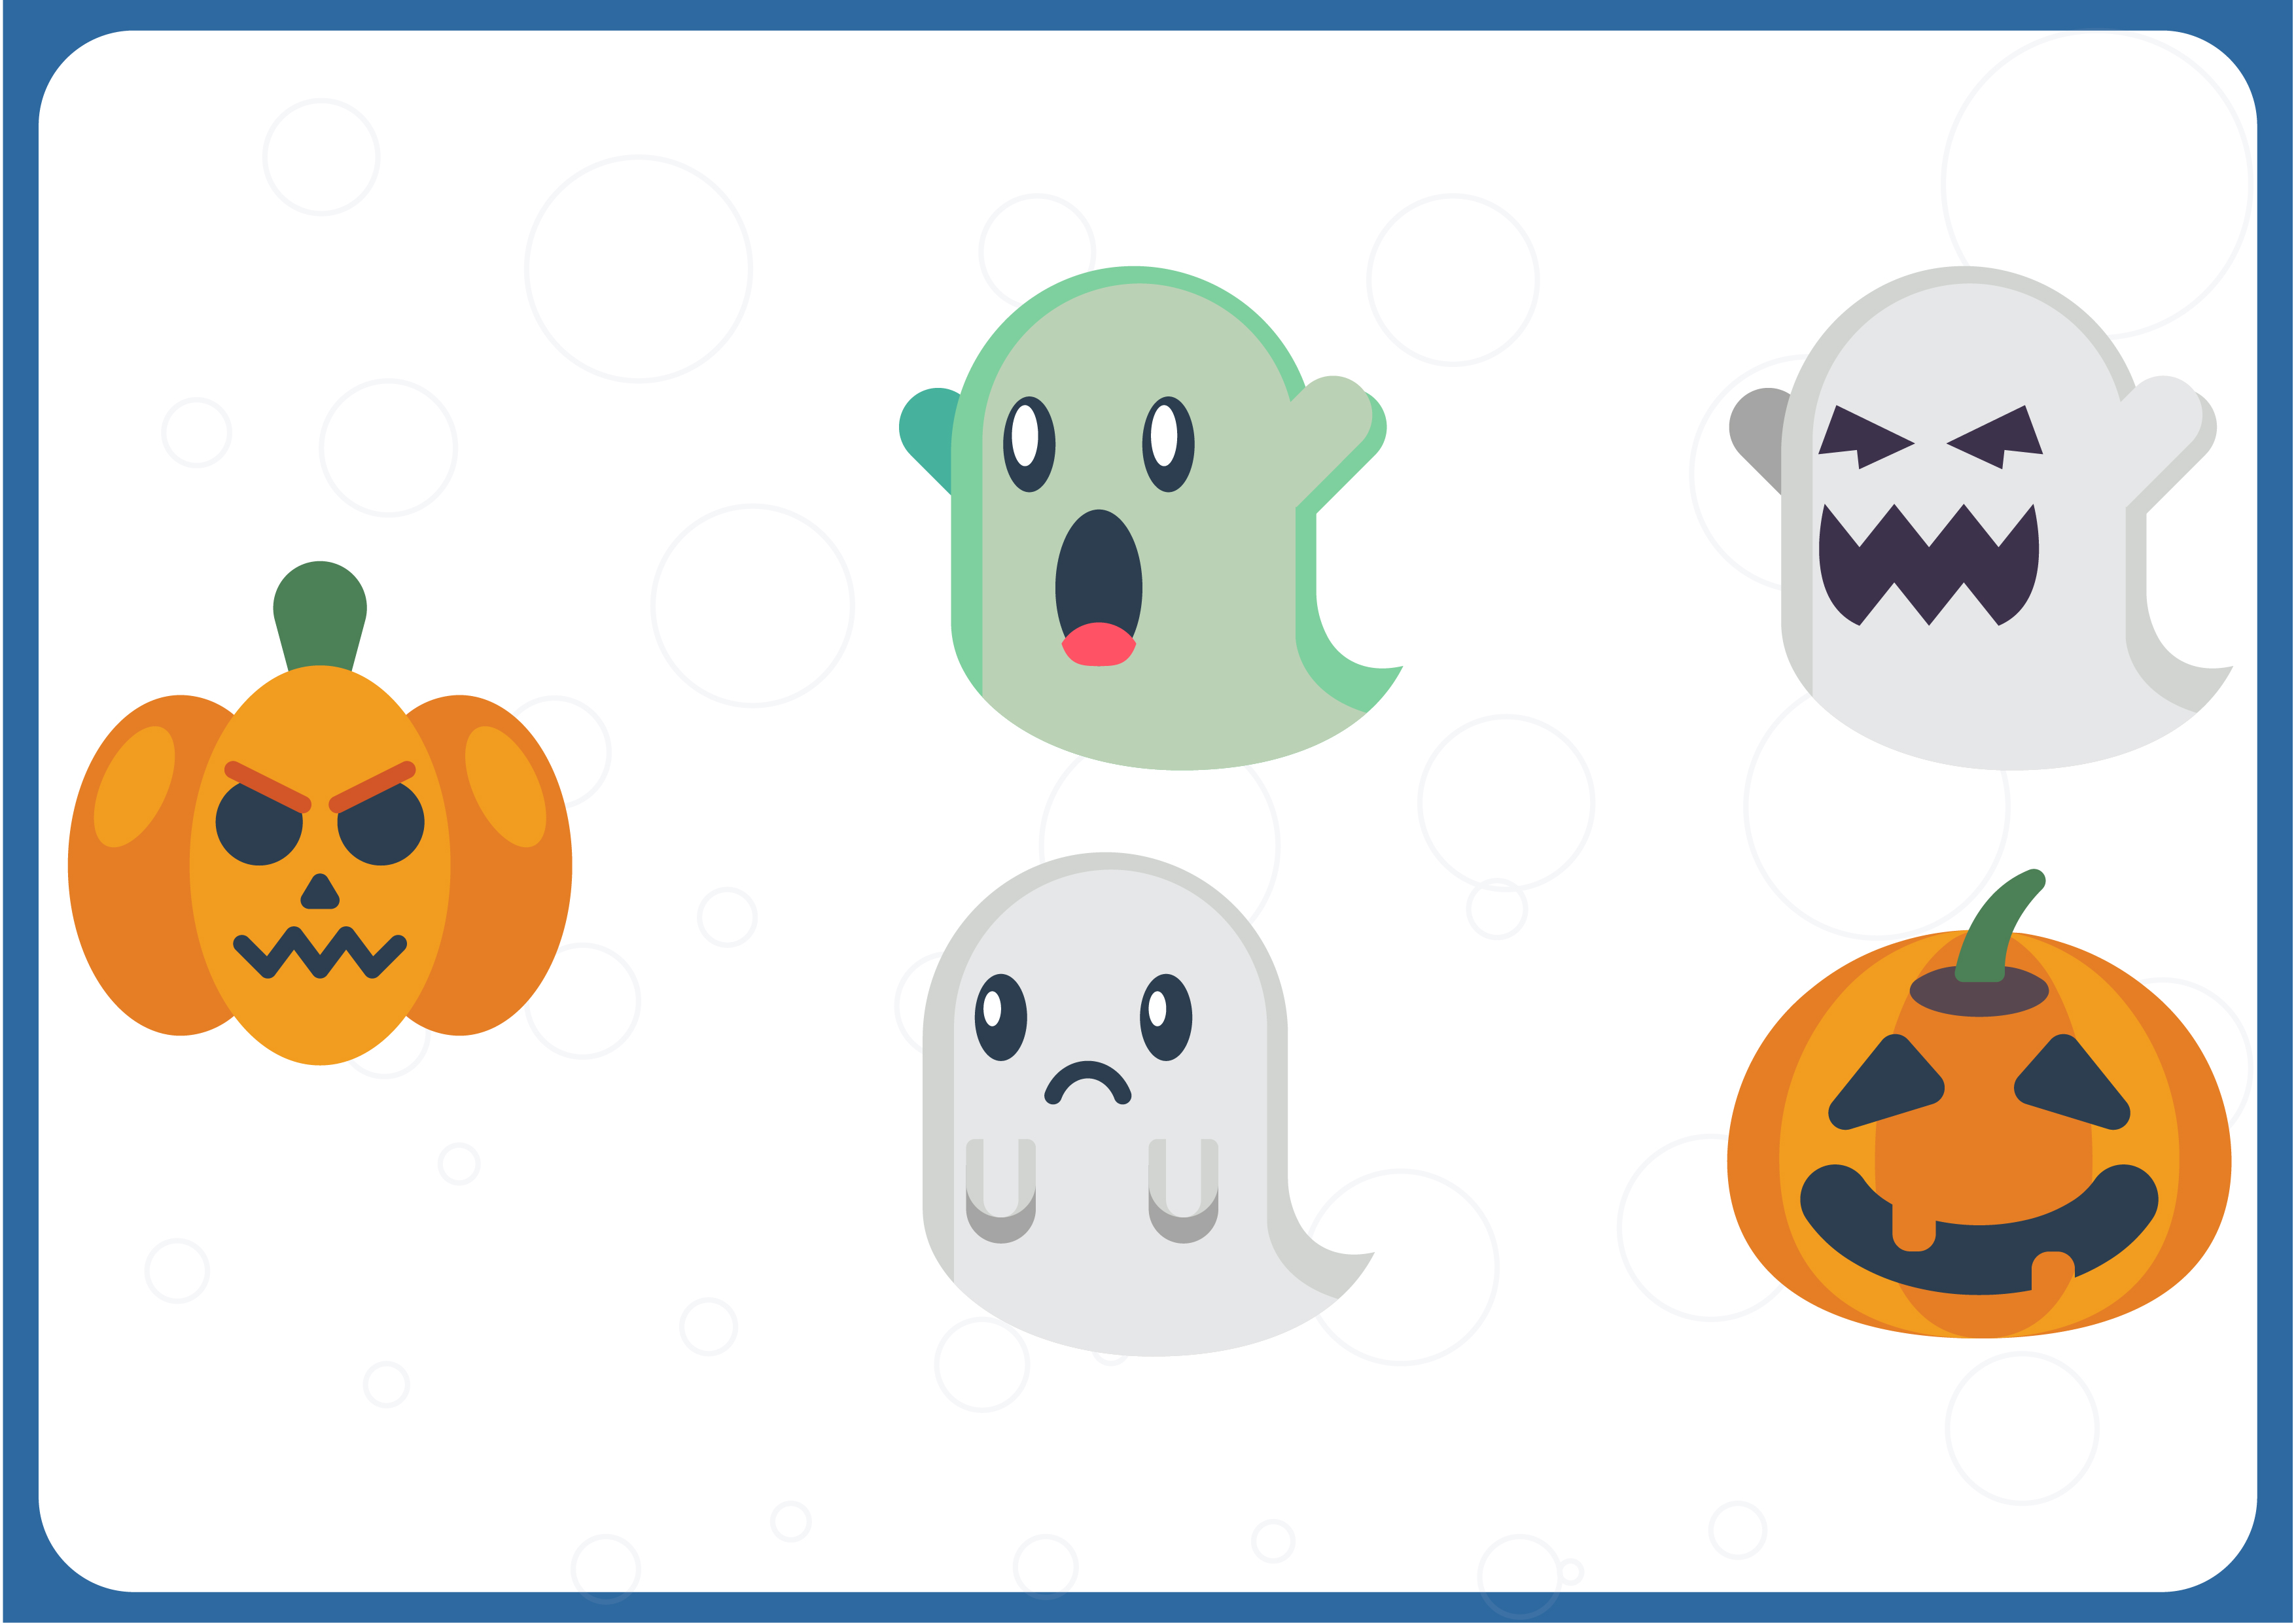 Download Free Halloween Graphic By Colorkhu123 Creative Fabrica for Cricut Explore, Silhouette and other cutting machines.